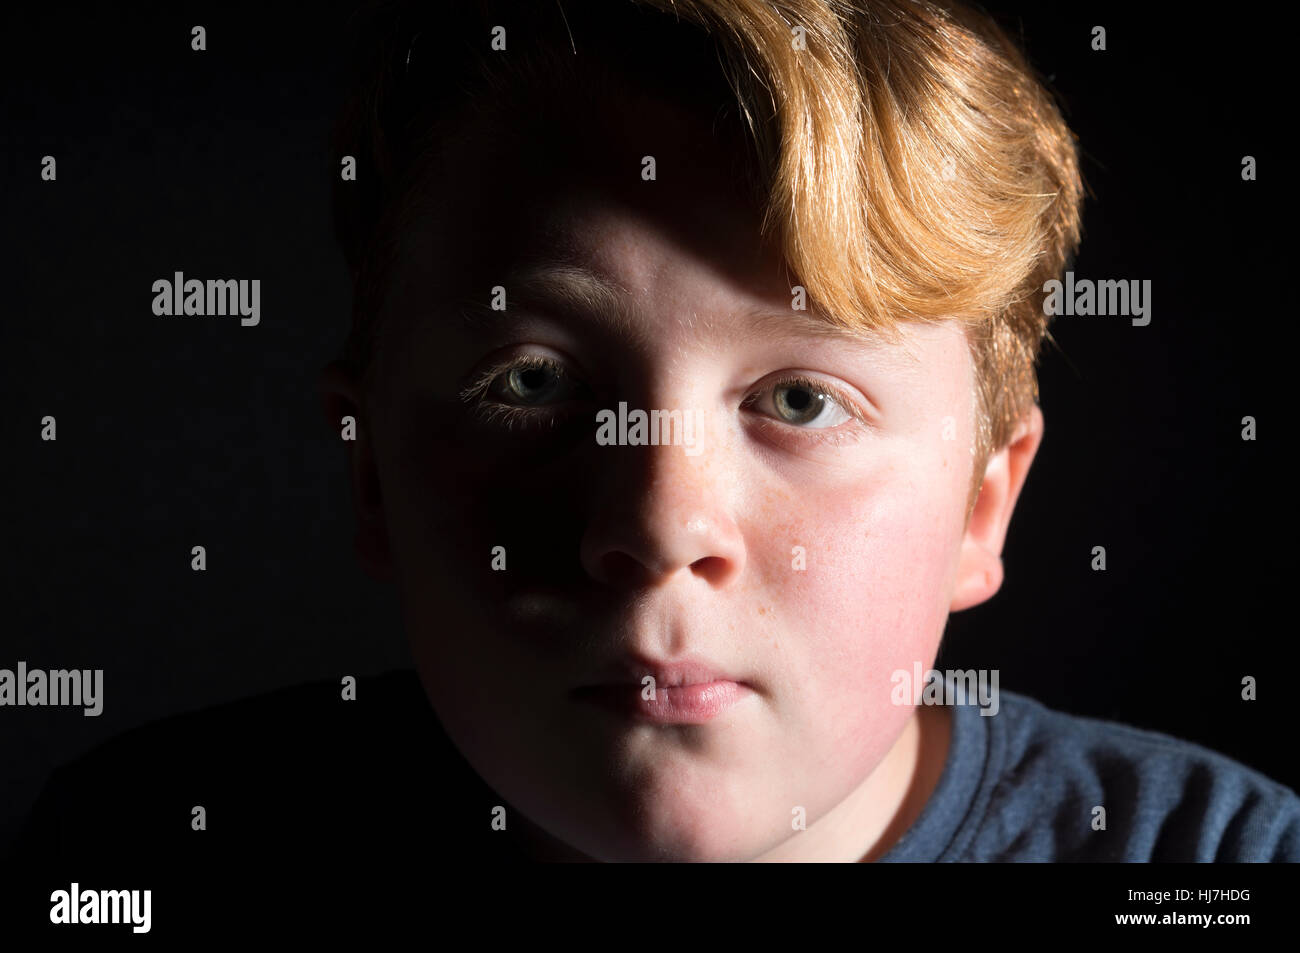 11-year old boy with red hair - Stock Image